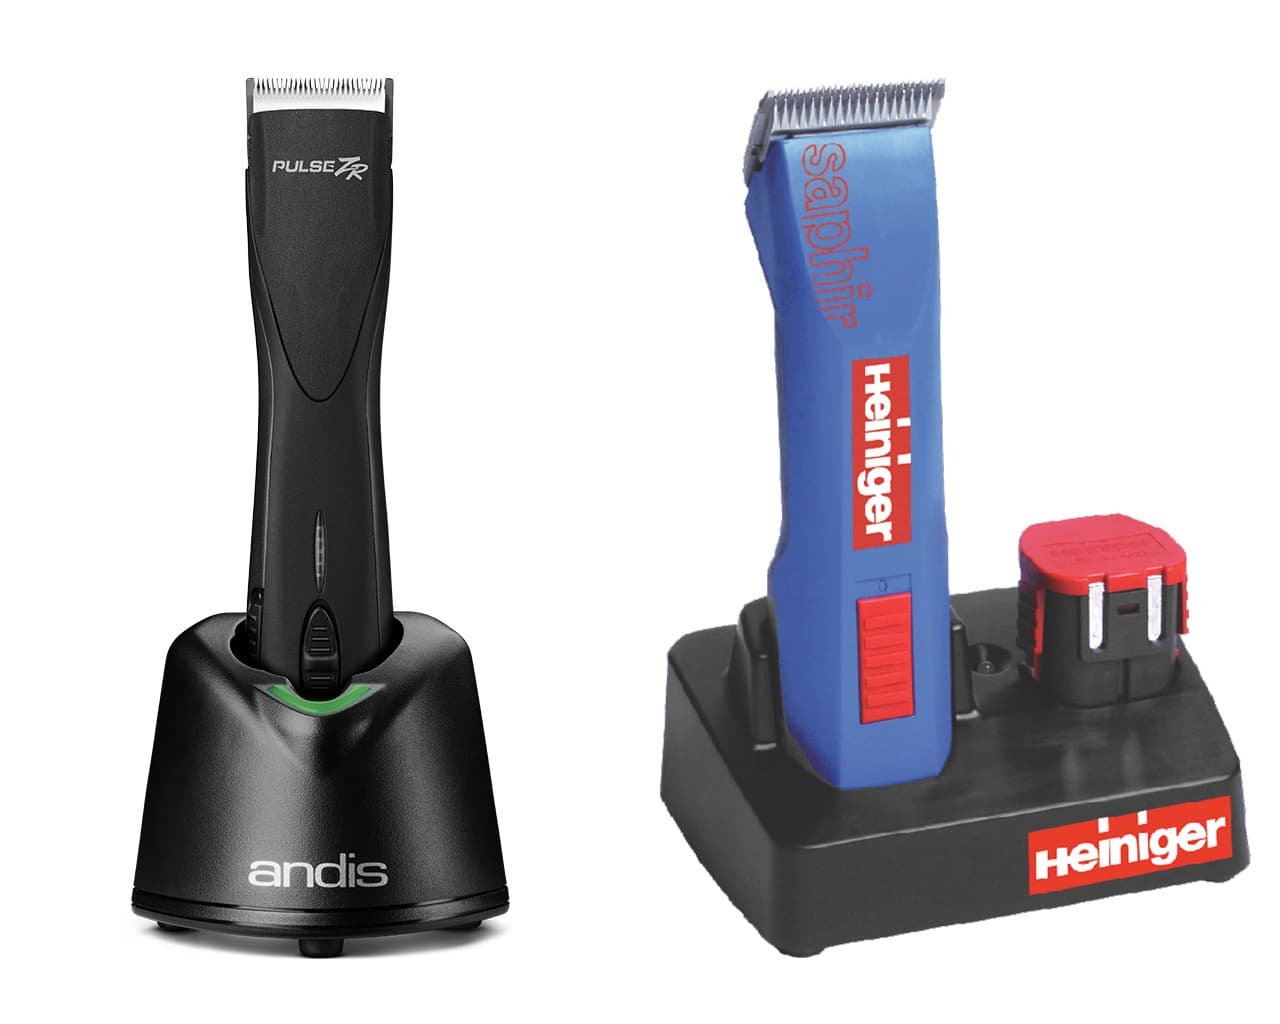 Andis Pulse ZR Cordless vs Heiniger Saphir Cordless Clipper